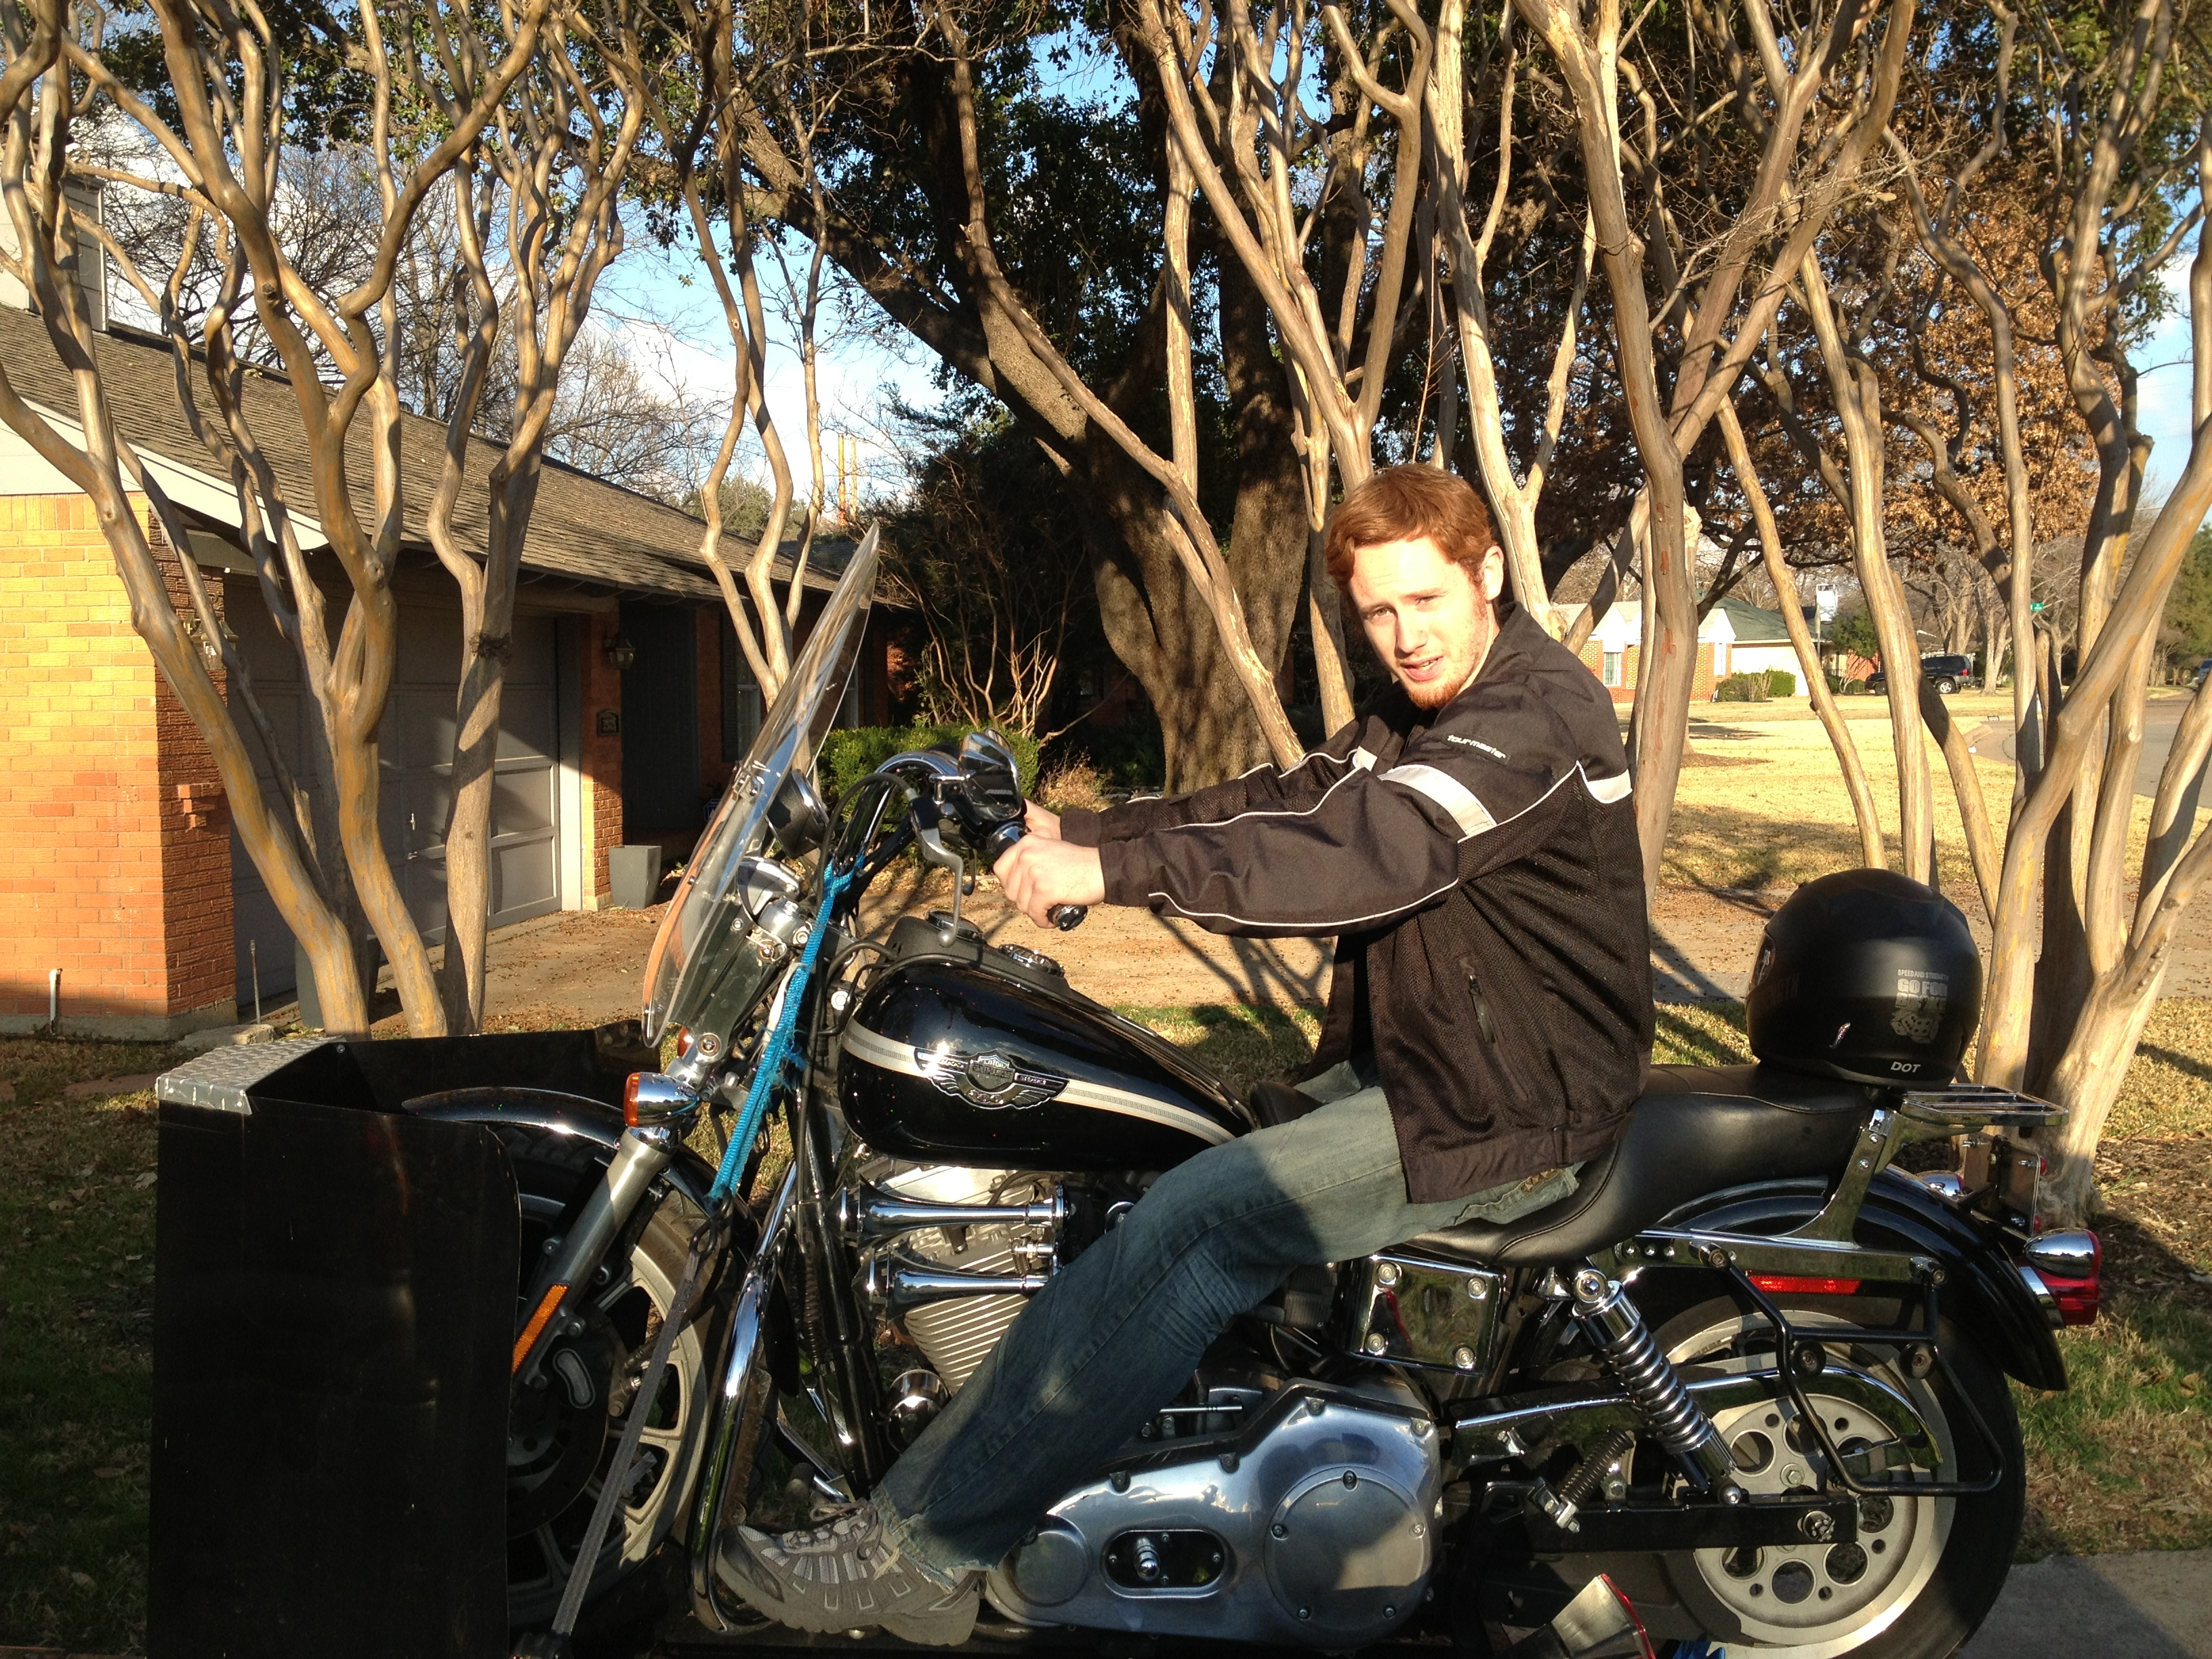 Caregivers and Harleys: The Art of Letting Go